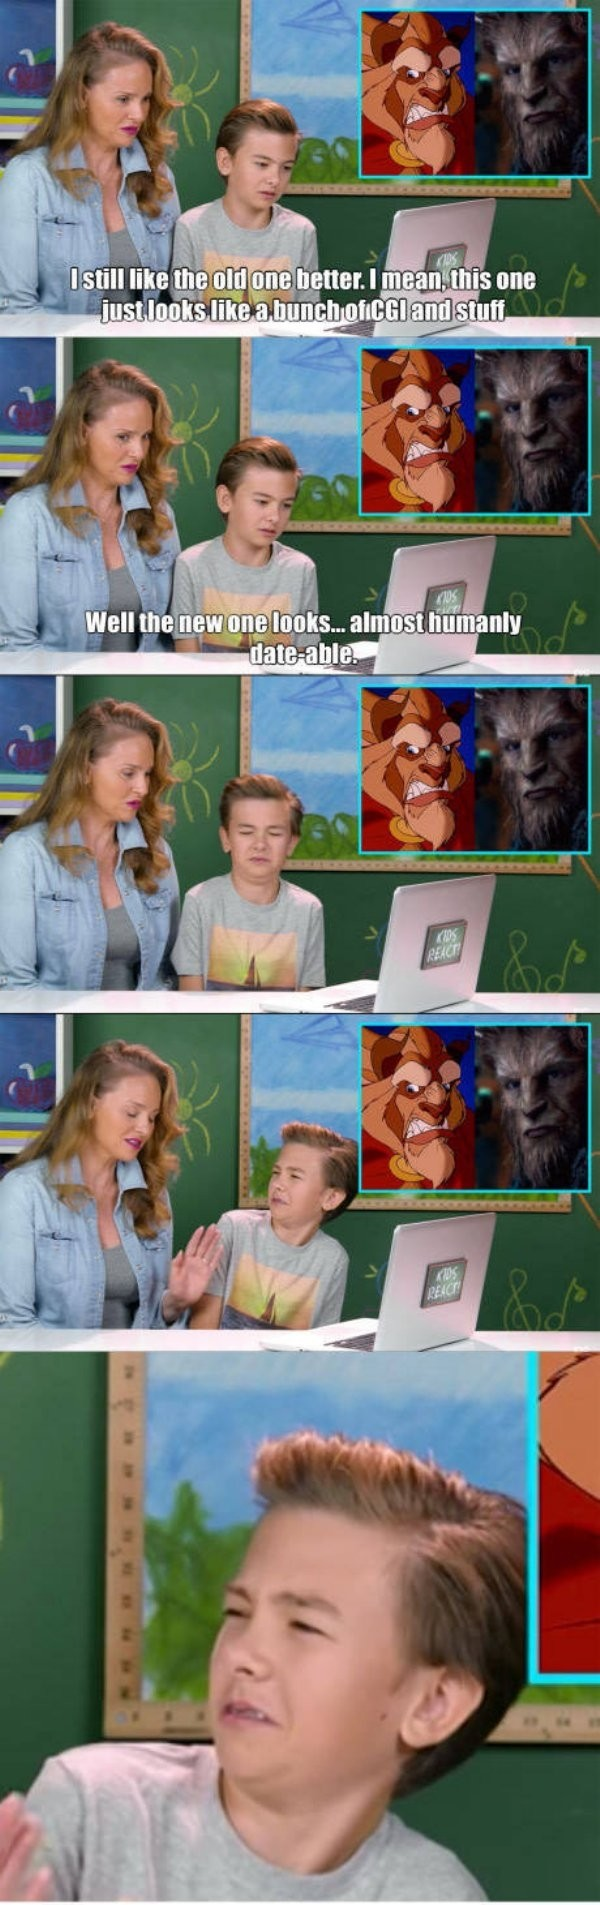 Mom wants to date the beast. . Iller. _ q ttwtt y. WTF MOM